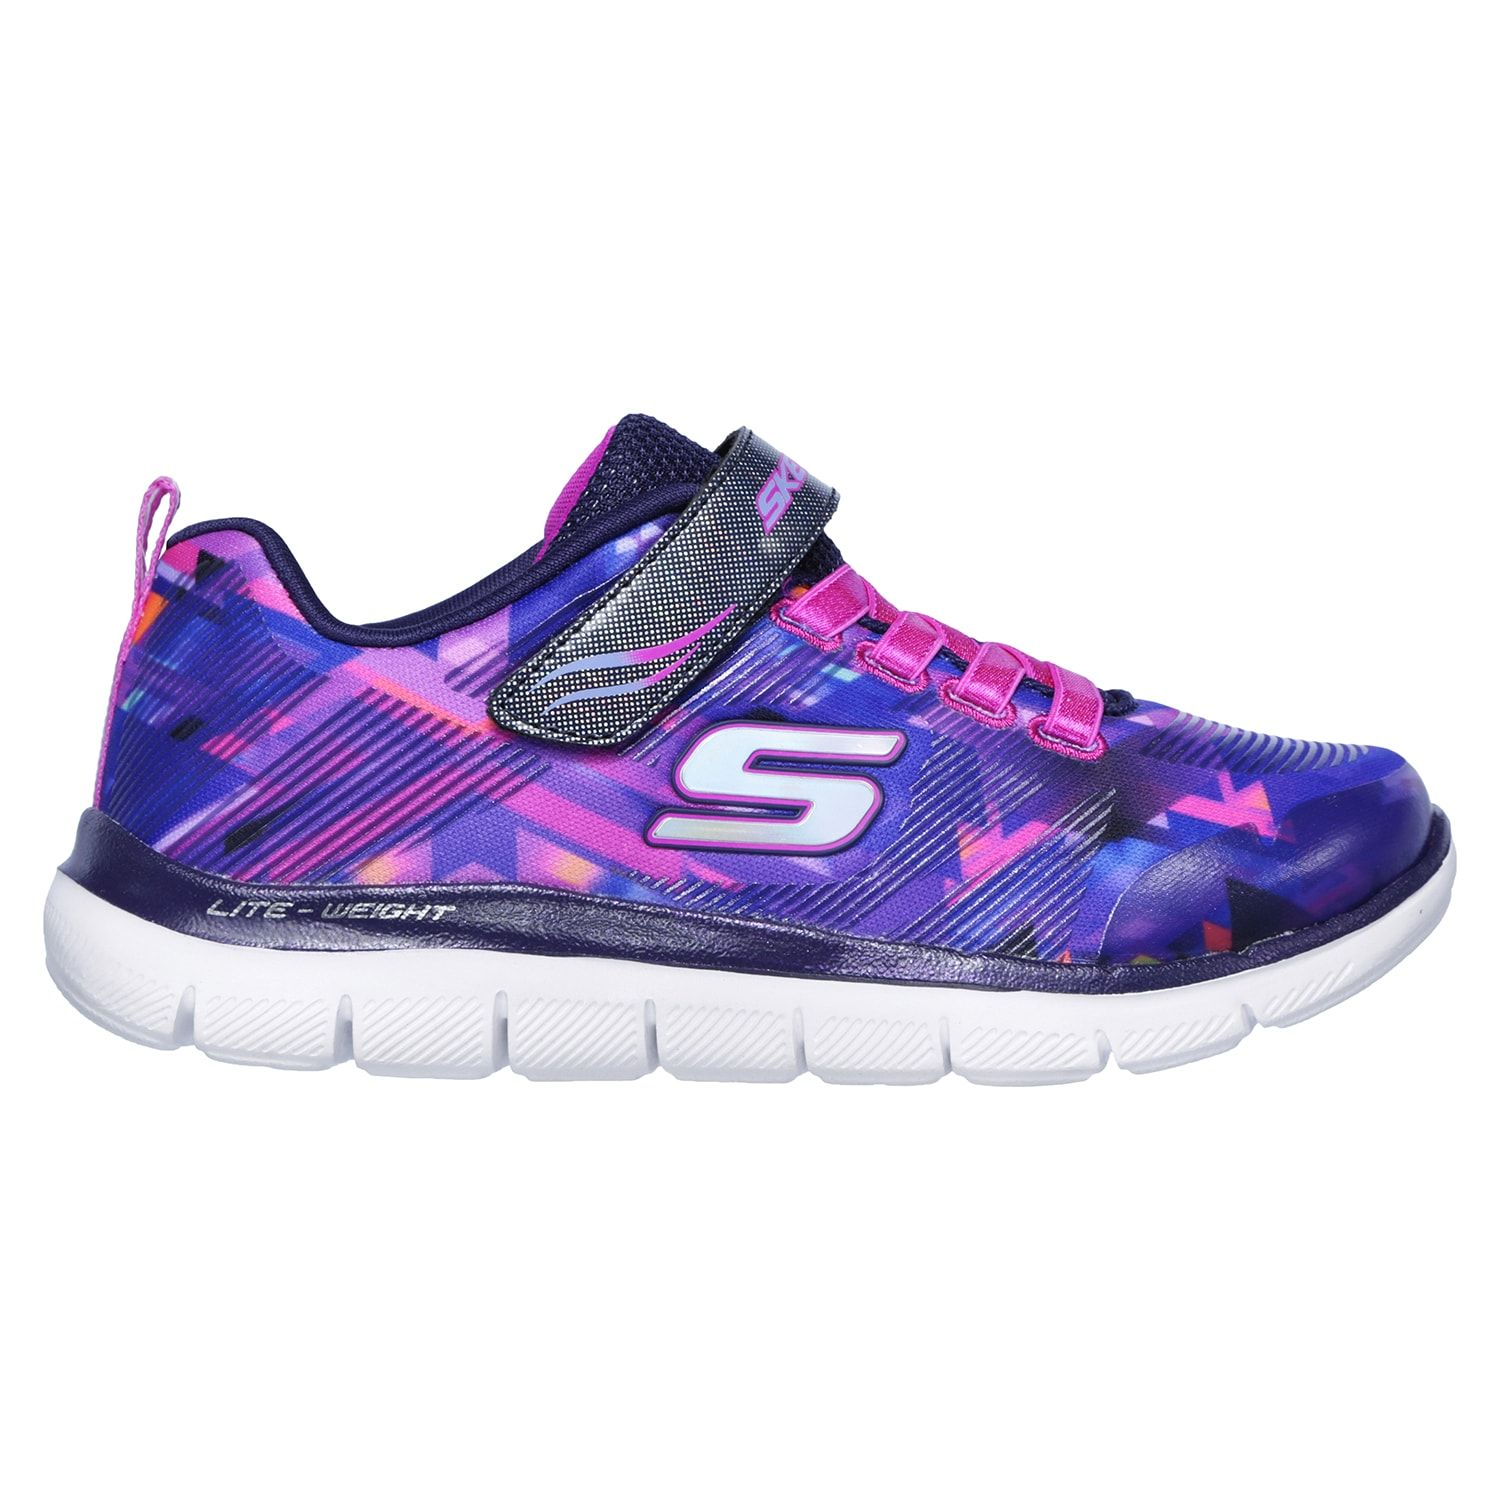 19cbbf79349a Skechers Skech Appeal 2.0 Color Me Girls  Sneakers  Appeal